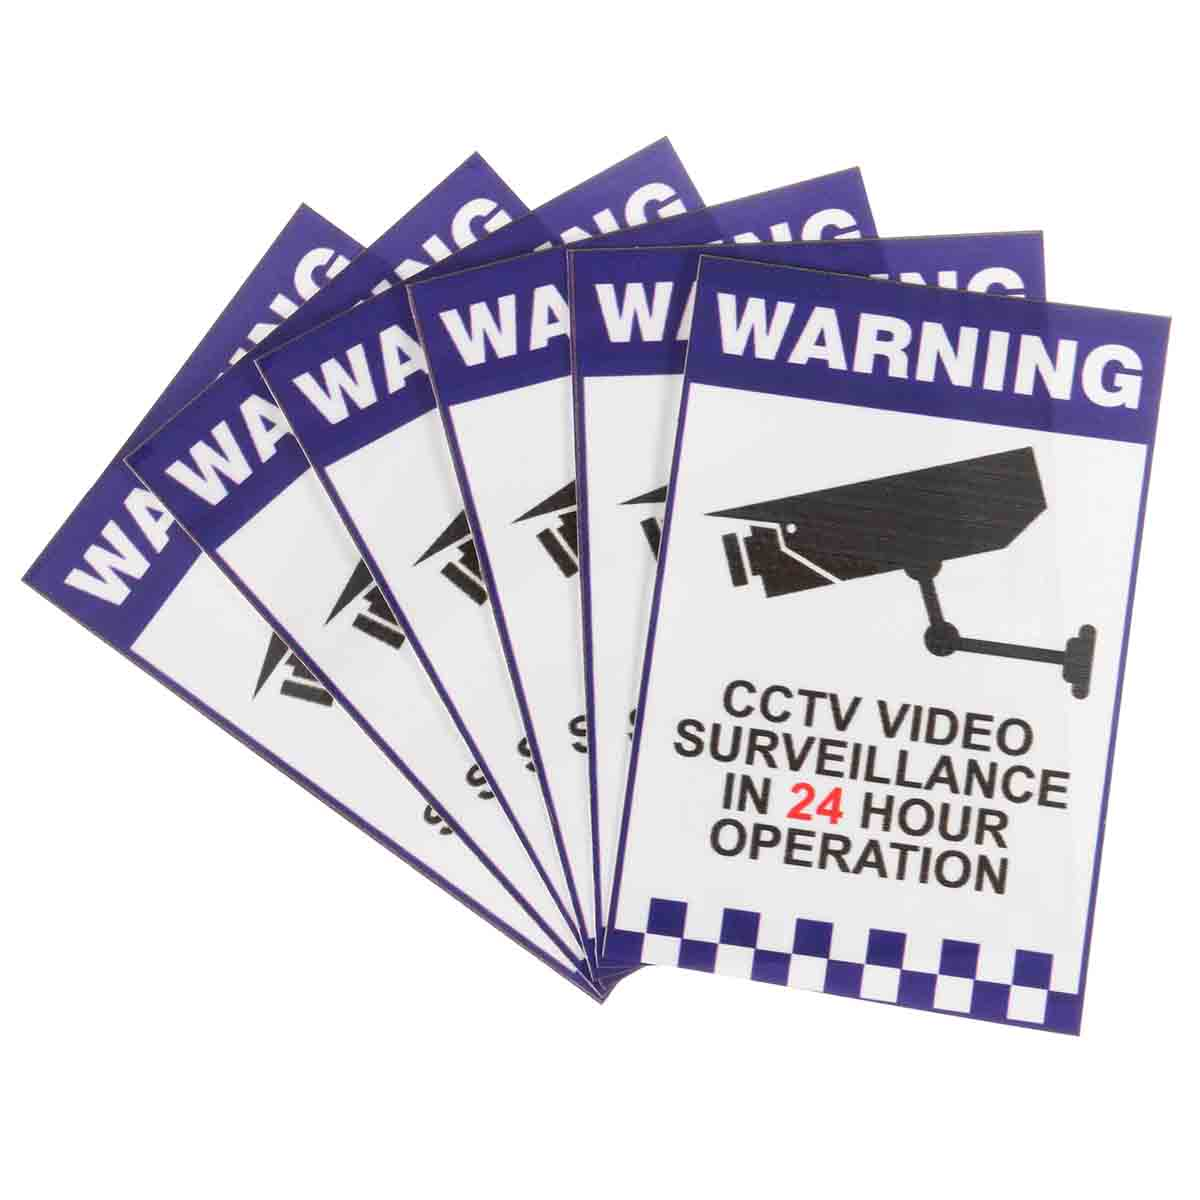 Safurance 6x Warning CCTV Security Surveillance Camera Sign Warning Decal Sticker 66x100mm Home Security Safety 24 hours cctv security warning board transparent black multi colored